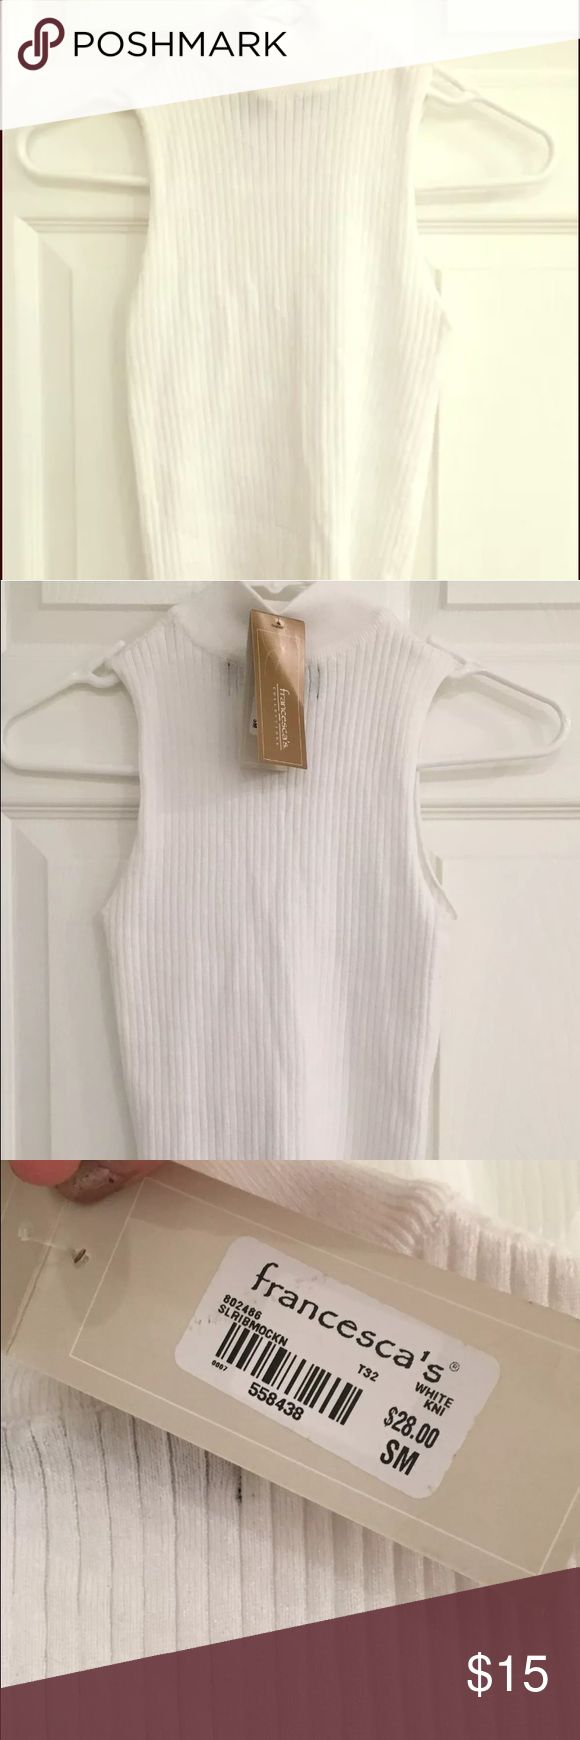 Small Francesca's white crop top! NWT Small Francesca's white ribbed crop top. NWT. Perfect with high waisted jean shorts and a fanny pack! Francesca's Collections Tops Crop Tops